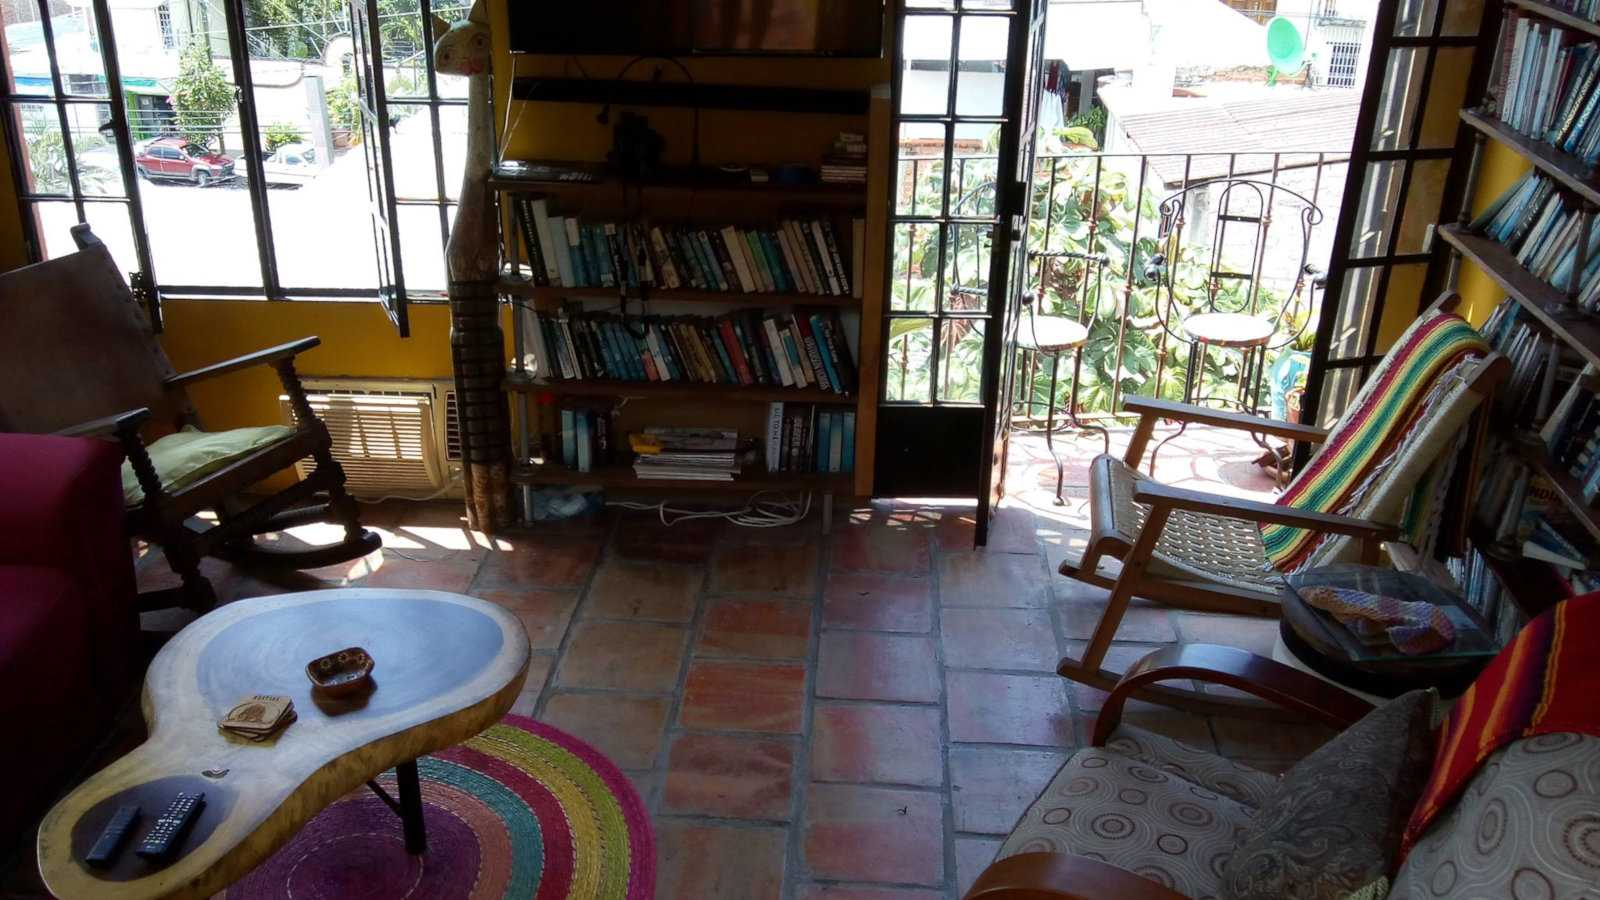 Casa 567 is an original townhome in Puerto Vallarta that's been converted into a fab bed and breakfast